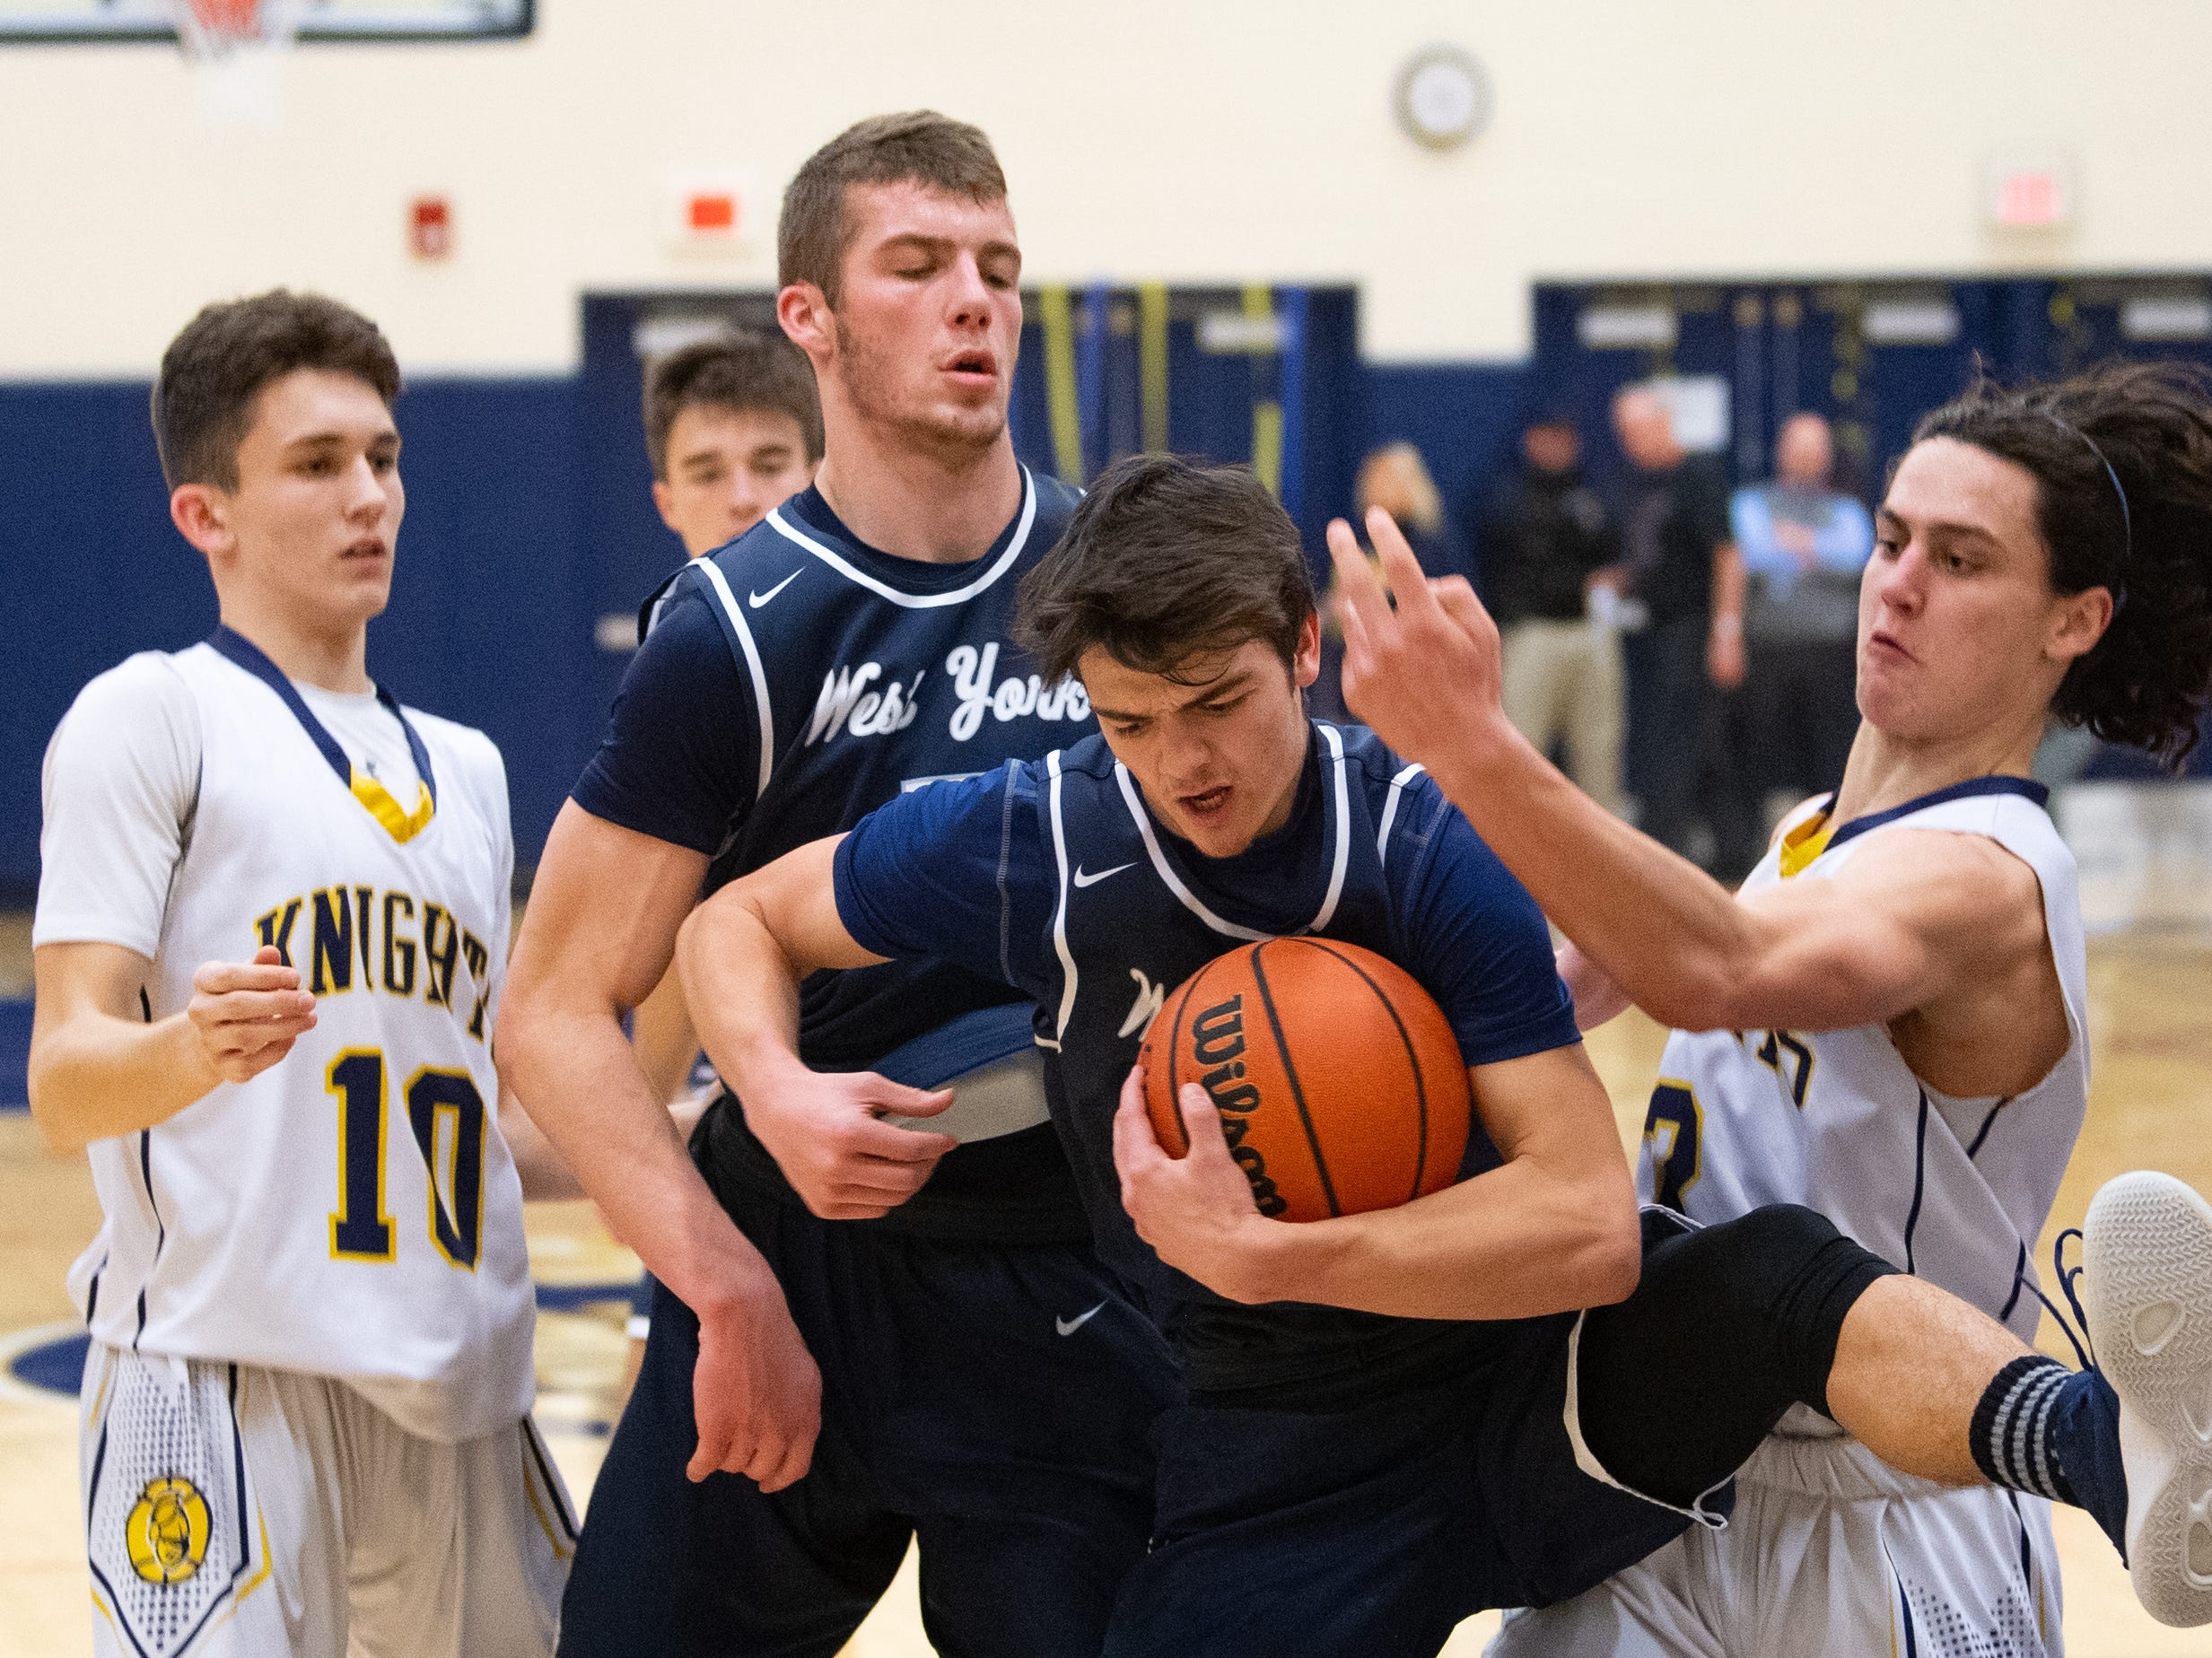 Jared Shearer (21) pulls down the rebound during the YAIAA boys' basketball game between Eastern York and West York, Friday, January 25, 2019. The Golden Knights defeated the Bulldogs 59 to 55.